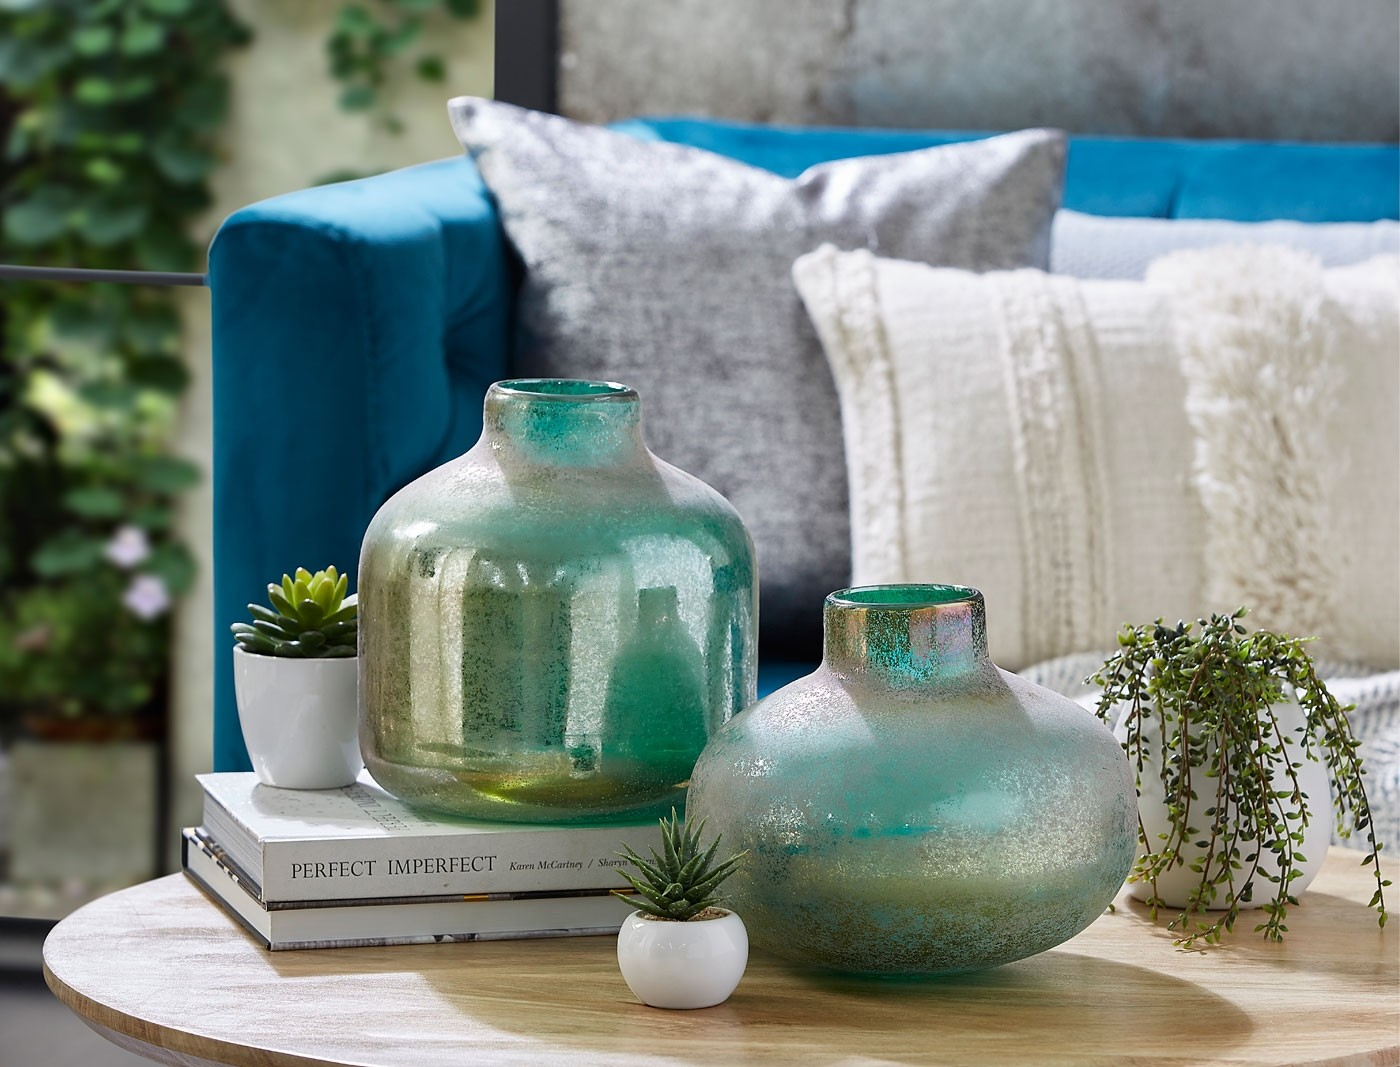 In the spotlight: Bed Bath & Table – Vases